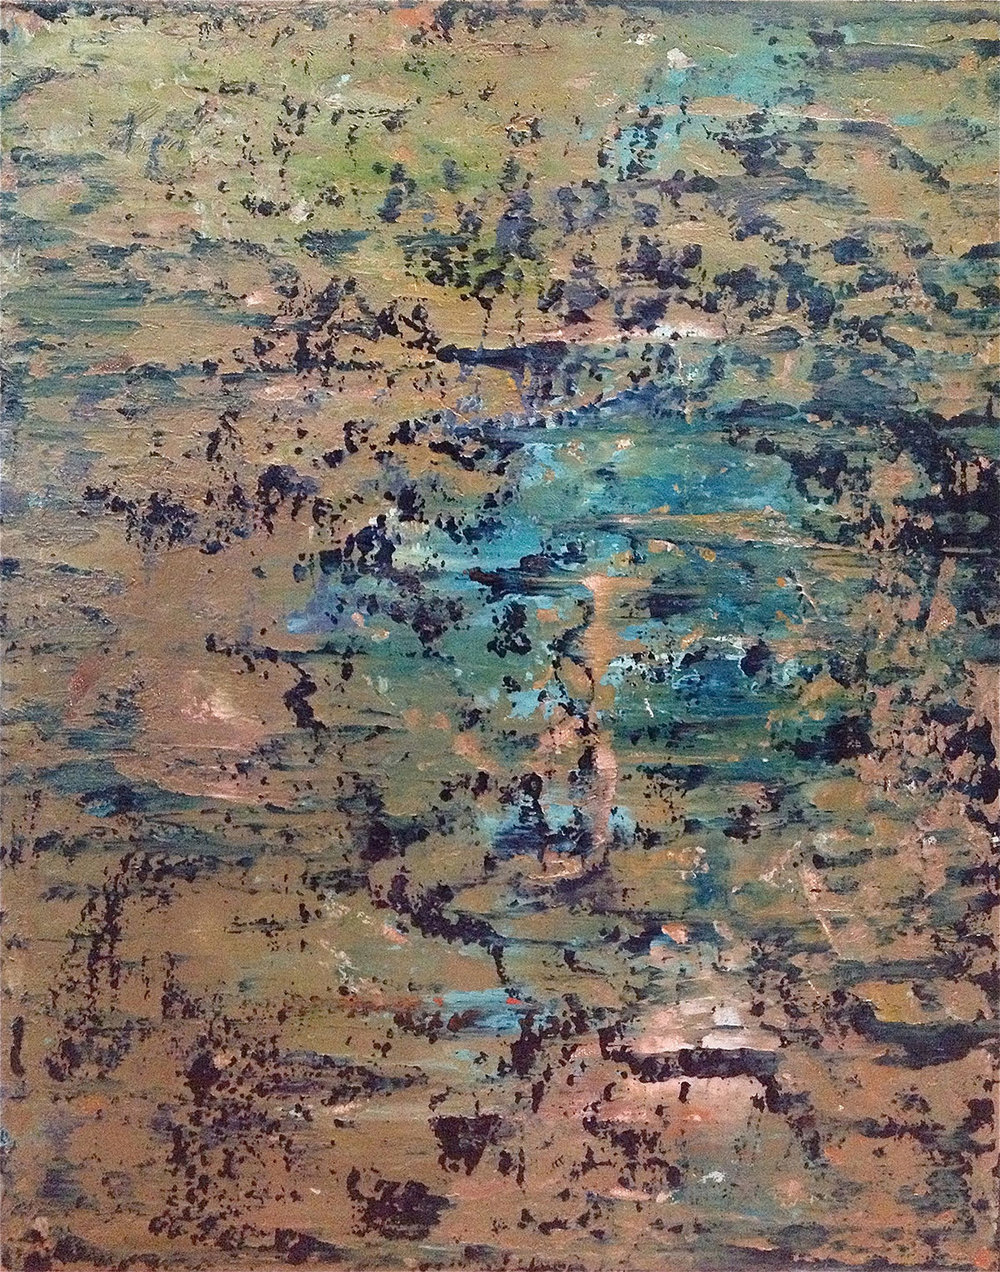 Blue Reflections, 2013